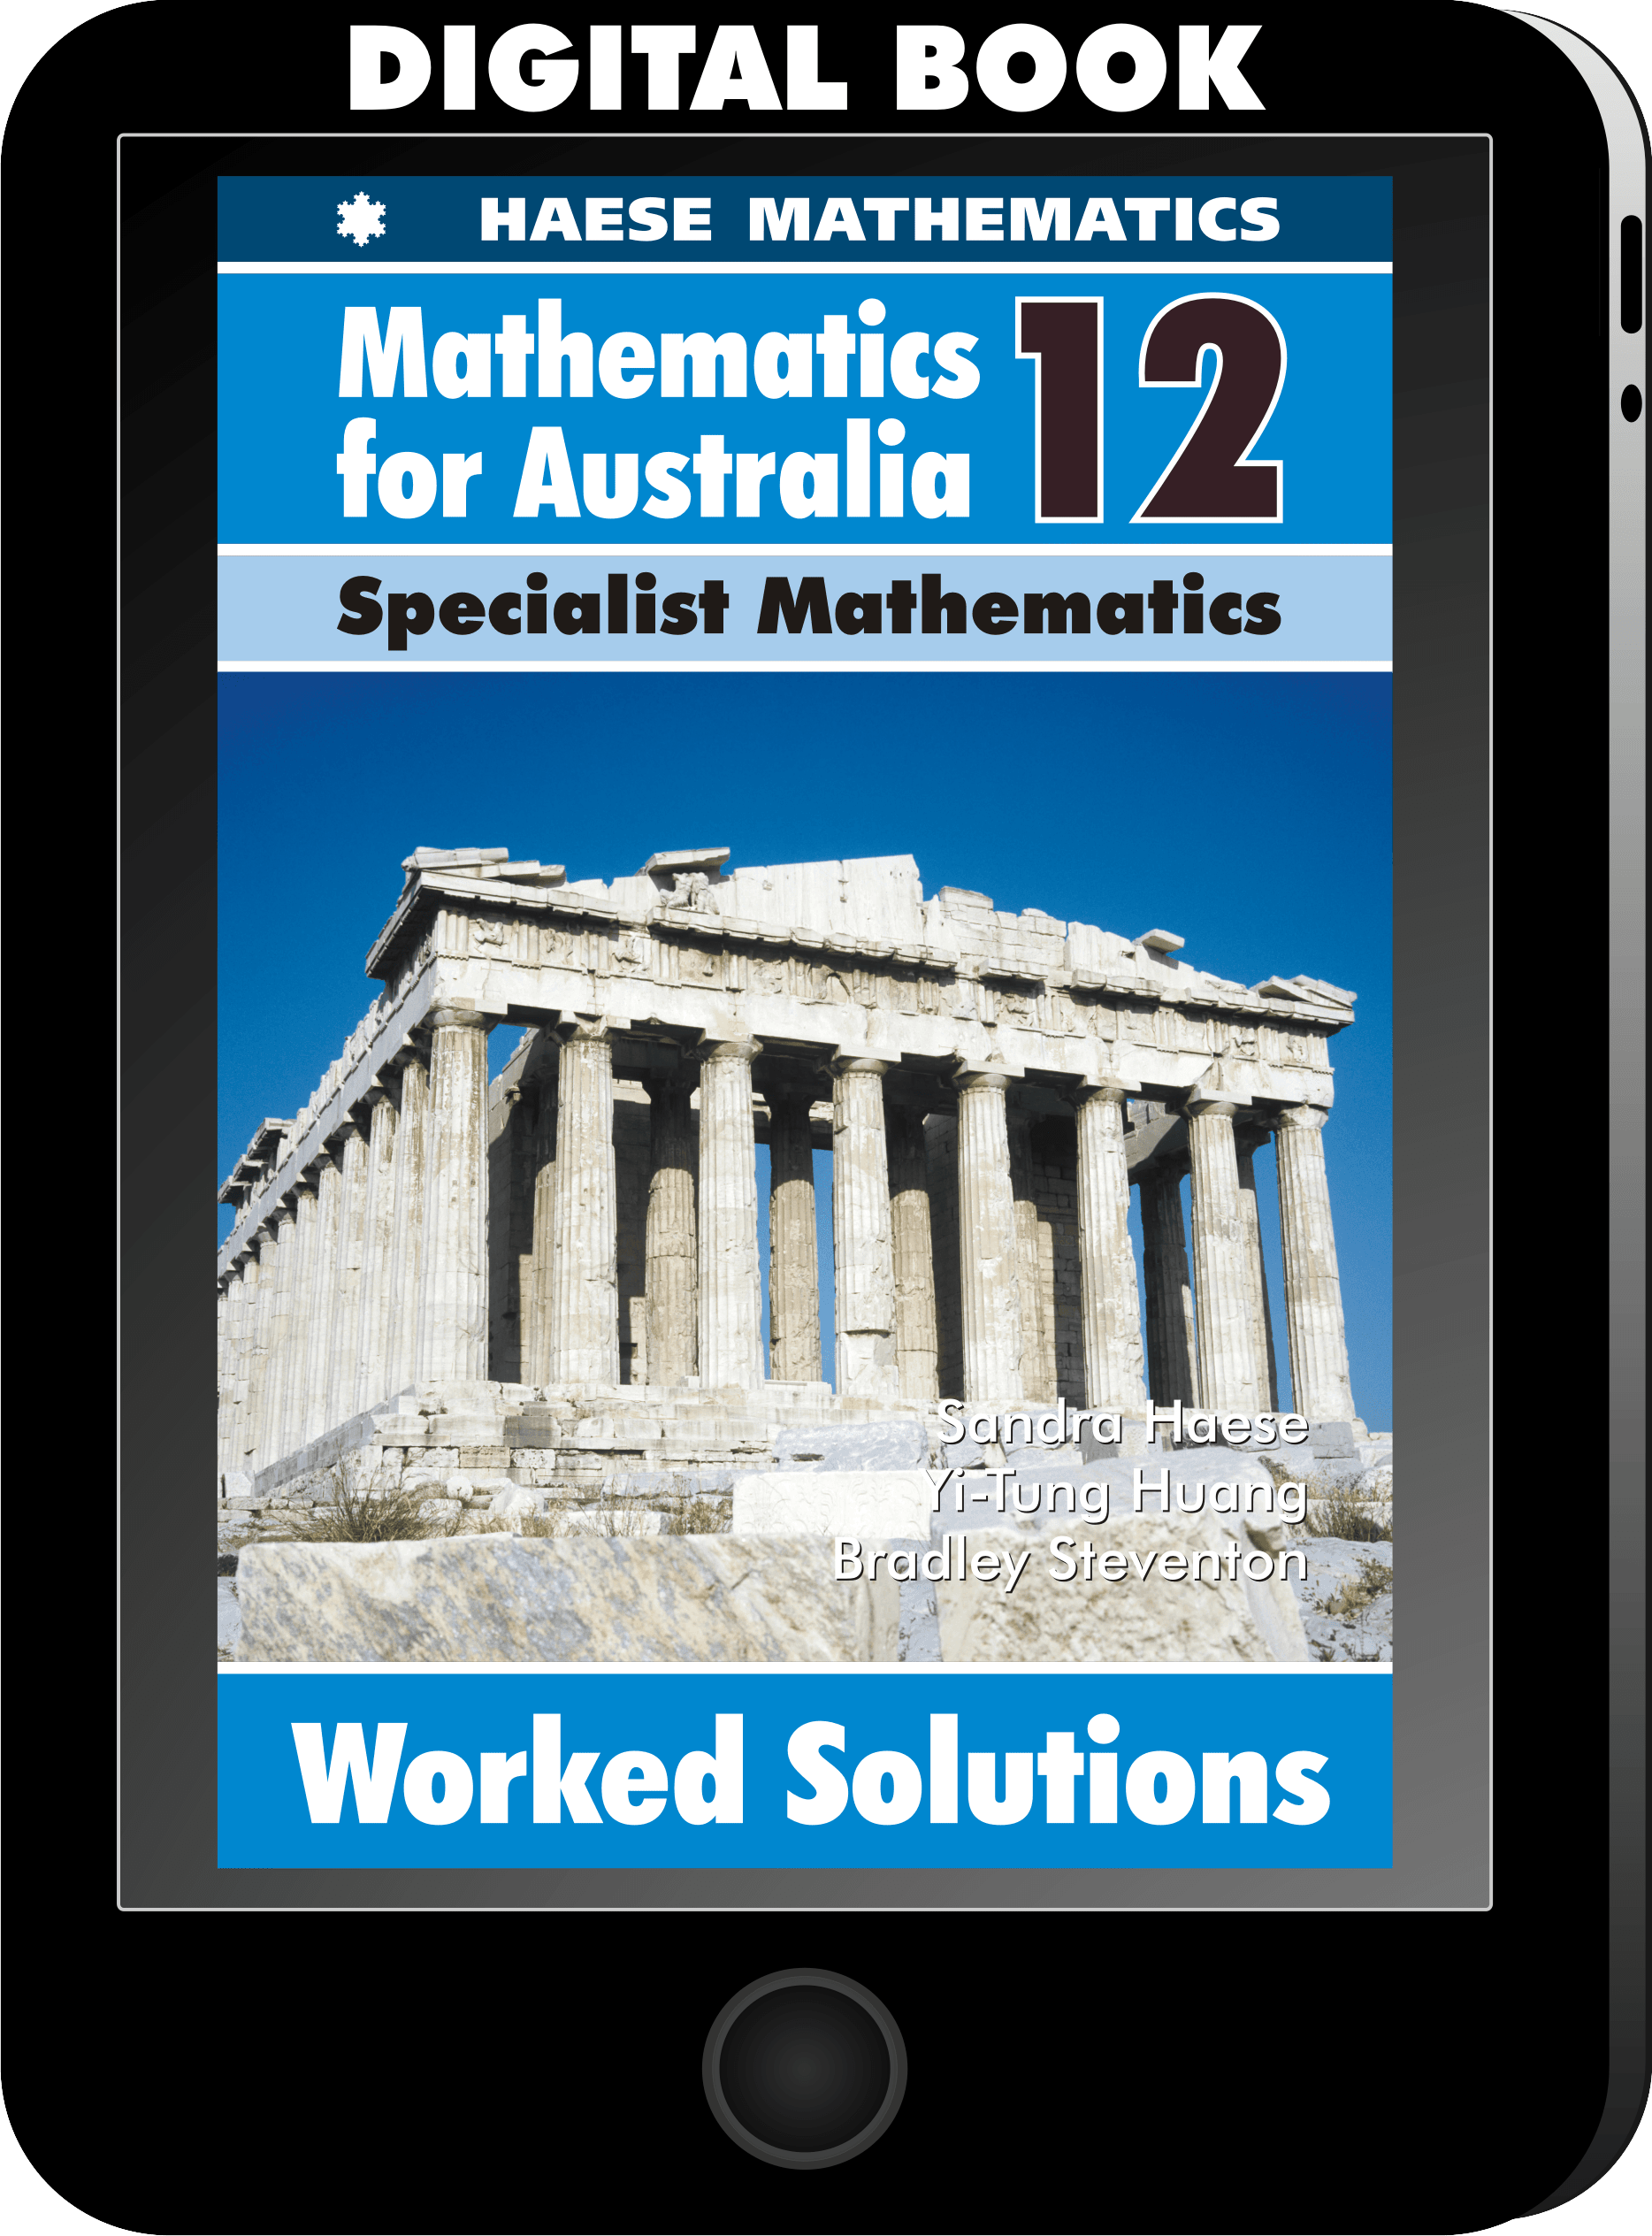 Mathematics for Australia 12 Specialist Mathematics Worked